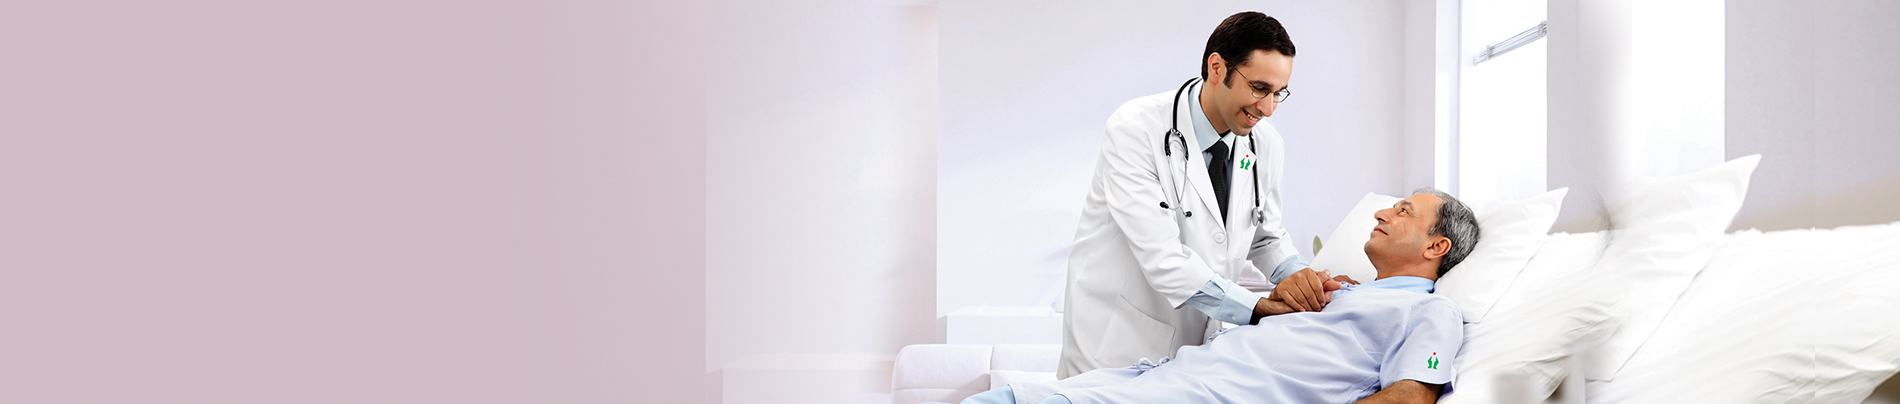 Best Anaesthesiology Hospital in Delhi NCR, India